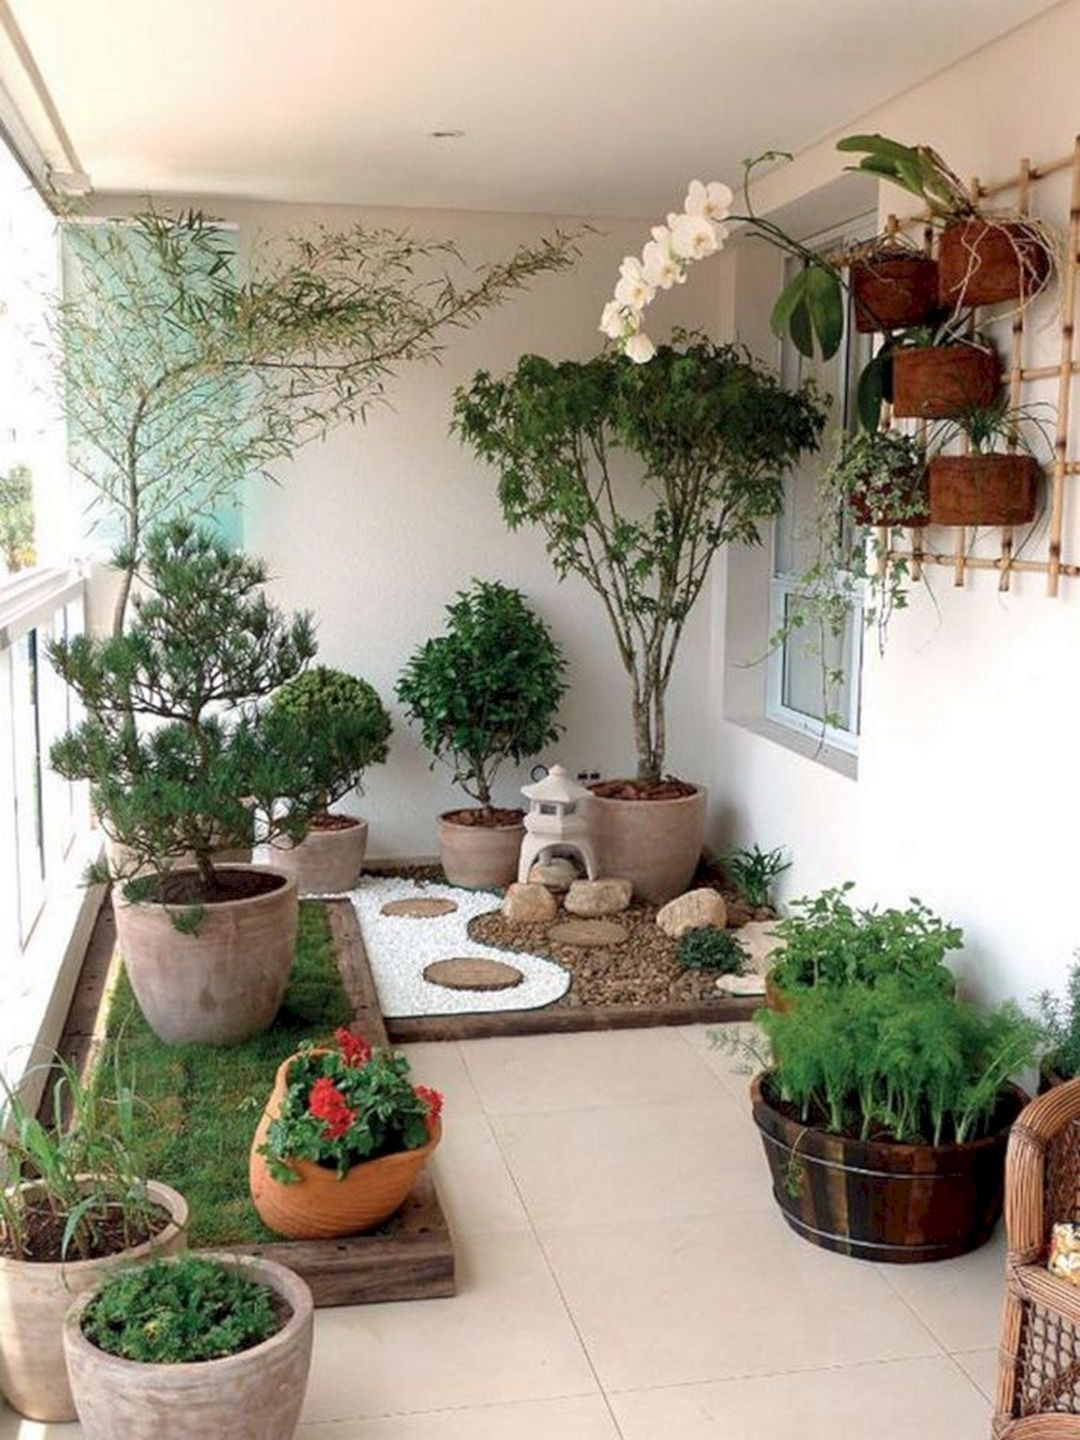 12 Incredible Indoor Garden Decoration Ideas To Make Fresh Home Design Decor It S Small Japanese Garden Japanese Garden Japanese Garden Landscape